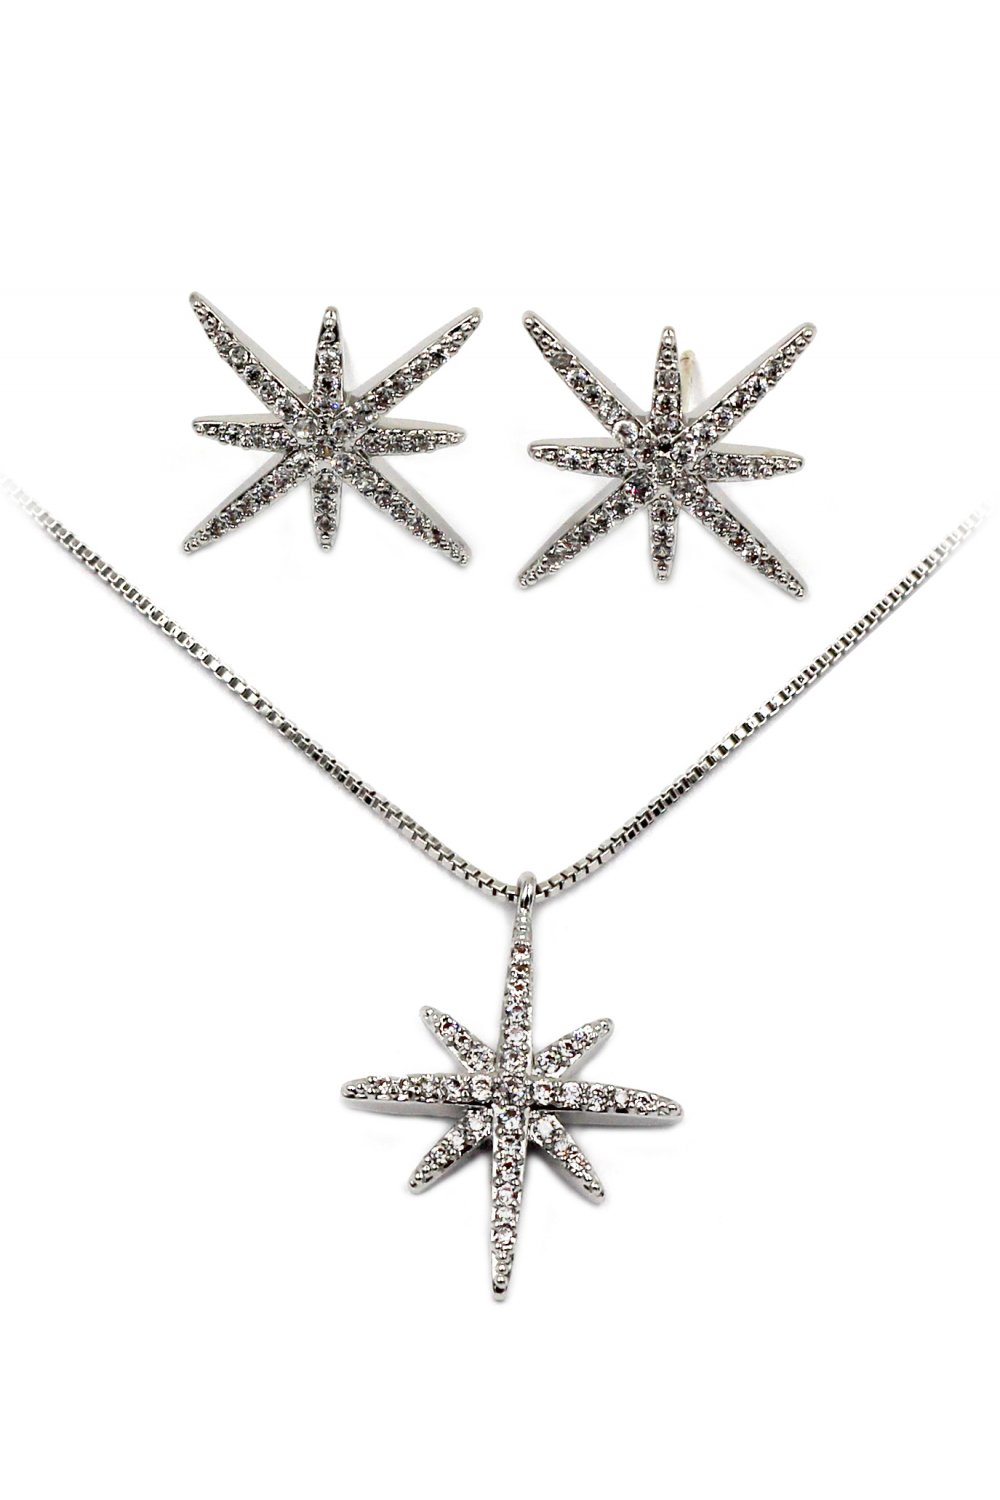 Fashion polaris small crystal Sterling silver chain necklace earrings silver set